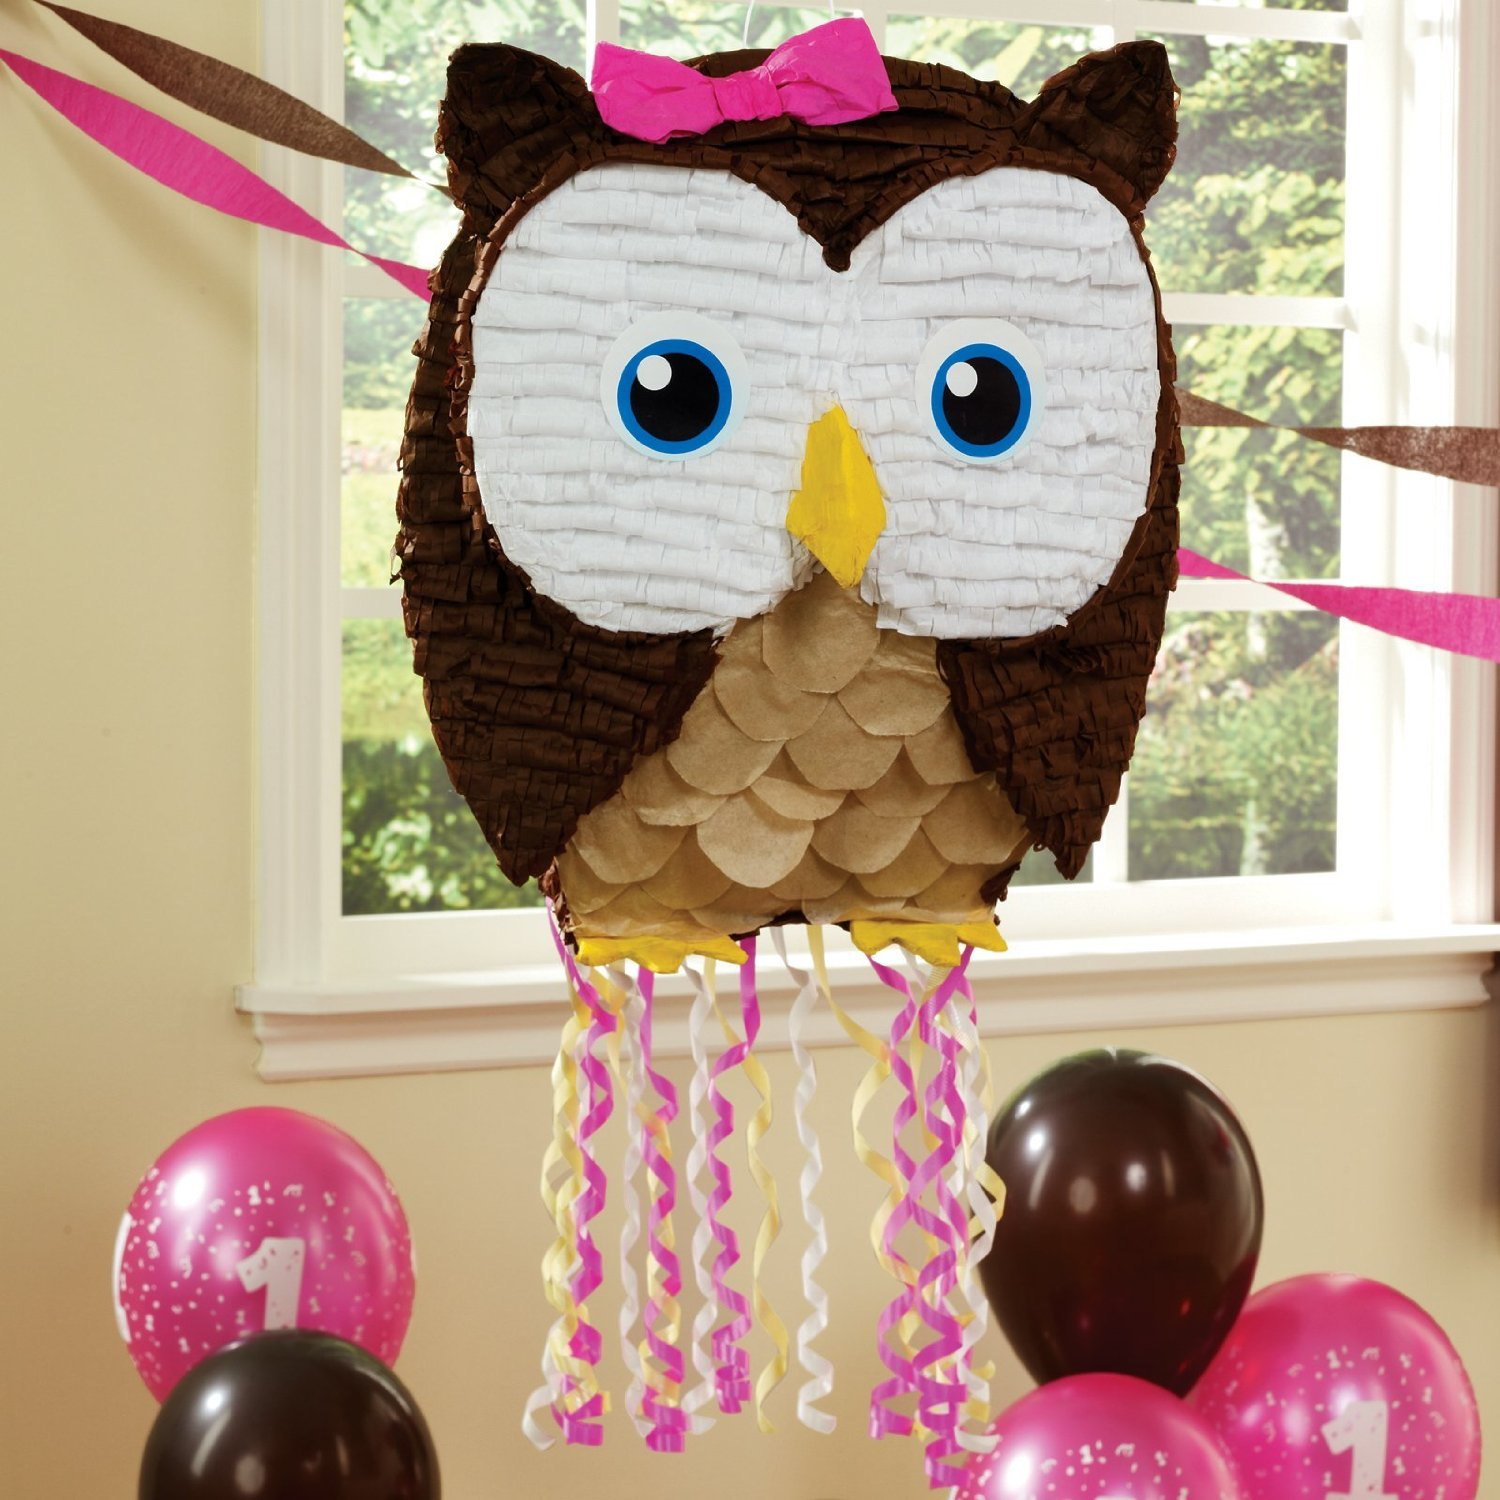 Princess prettys blog get creative and save with diy for Decoration pinata